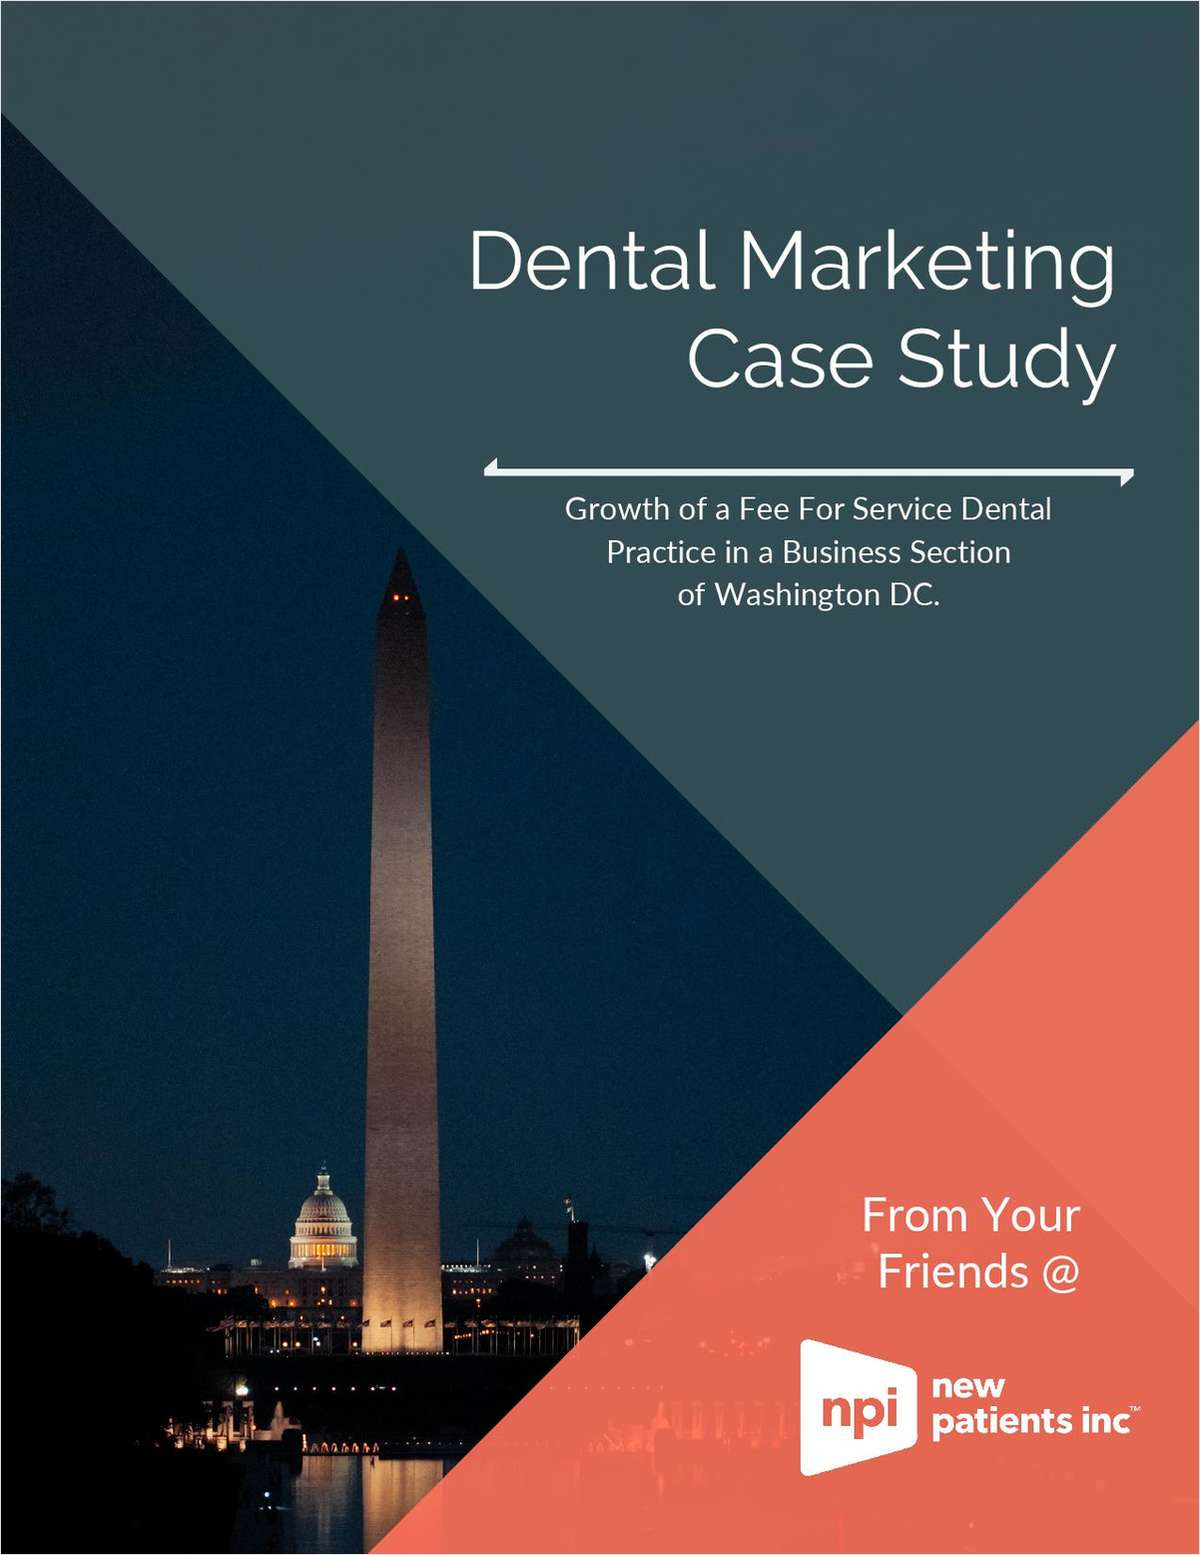 Growth of a fee for service dental practice in a business section of Washington DC.